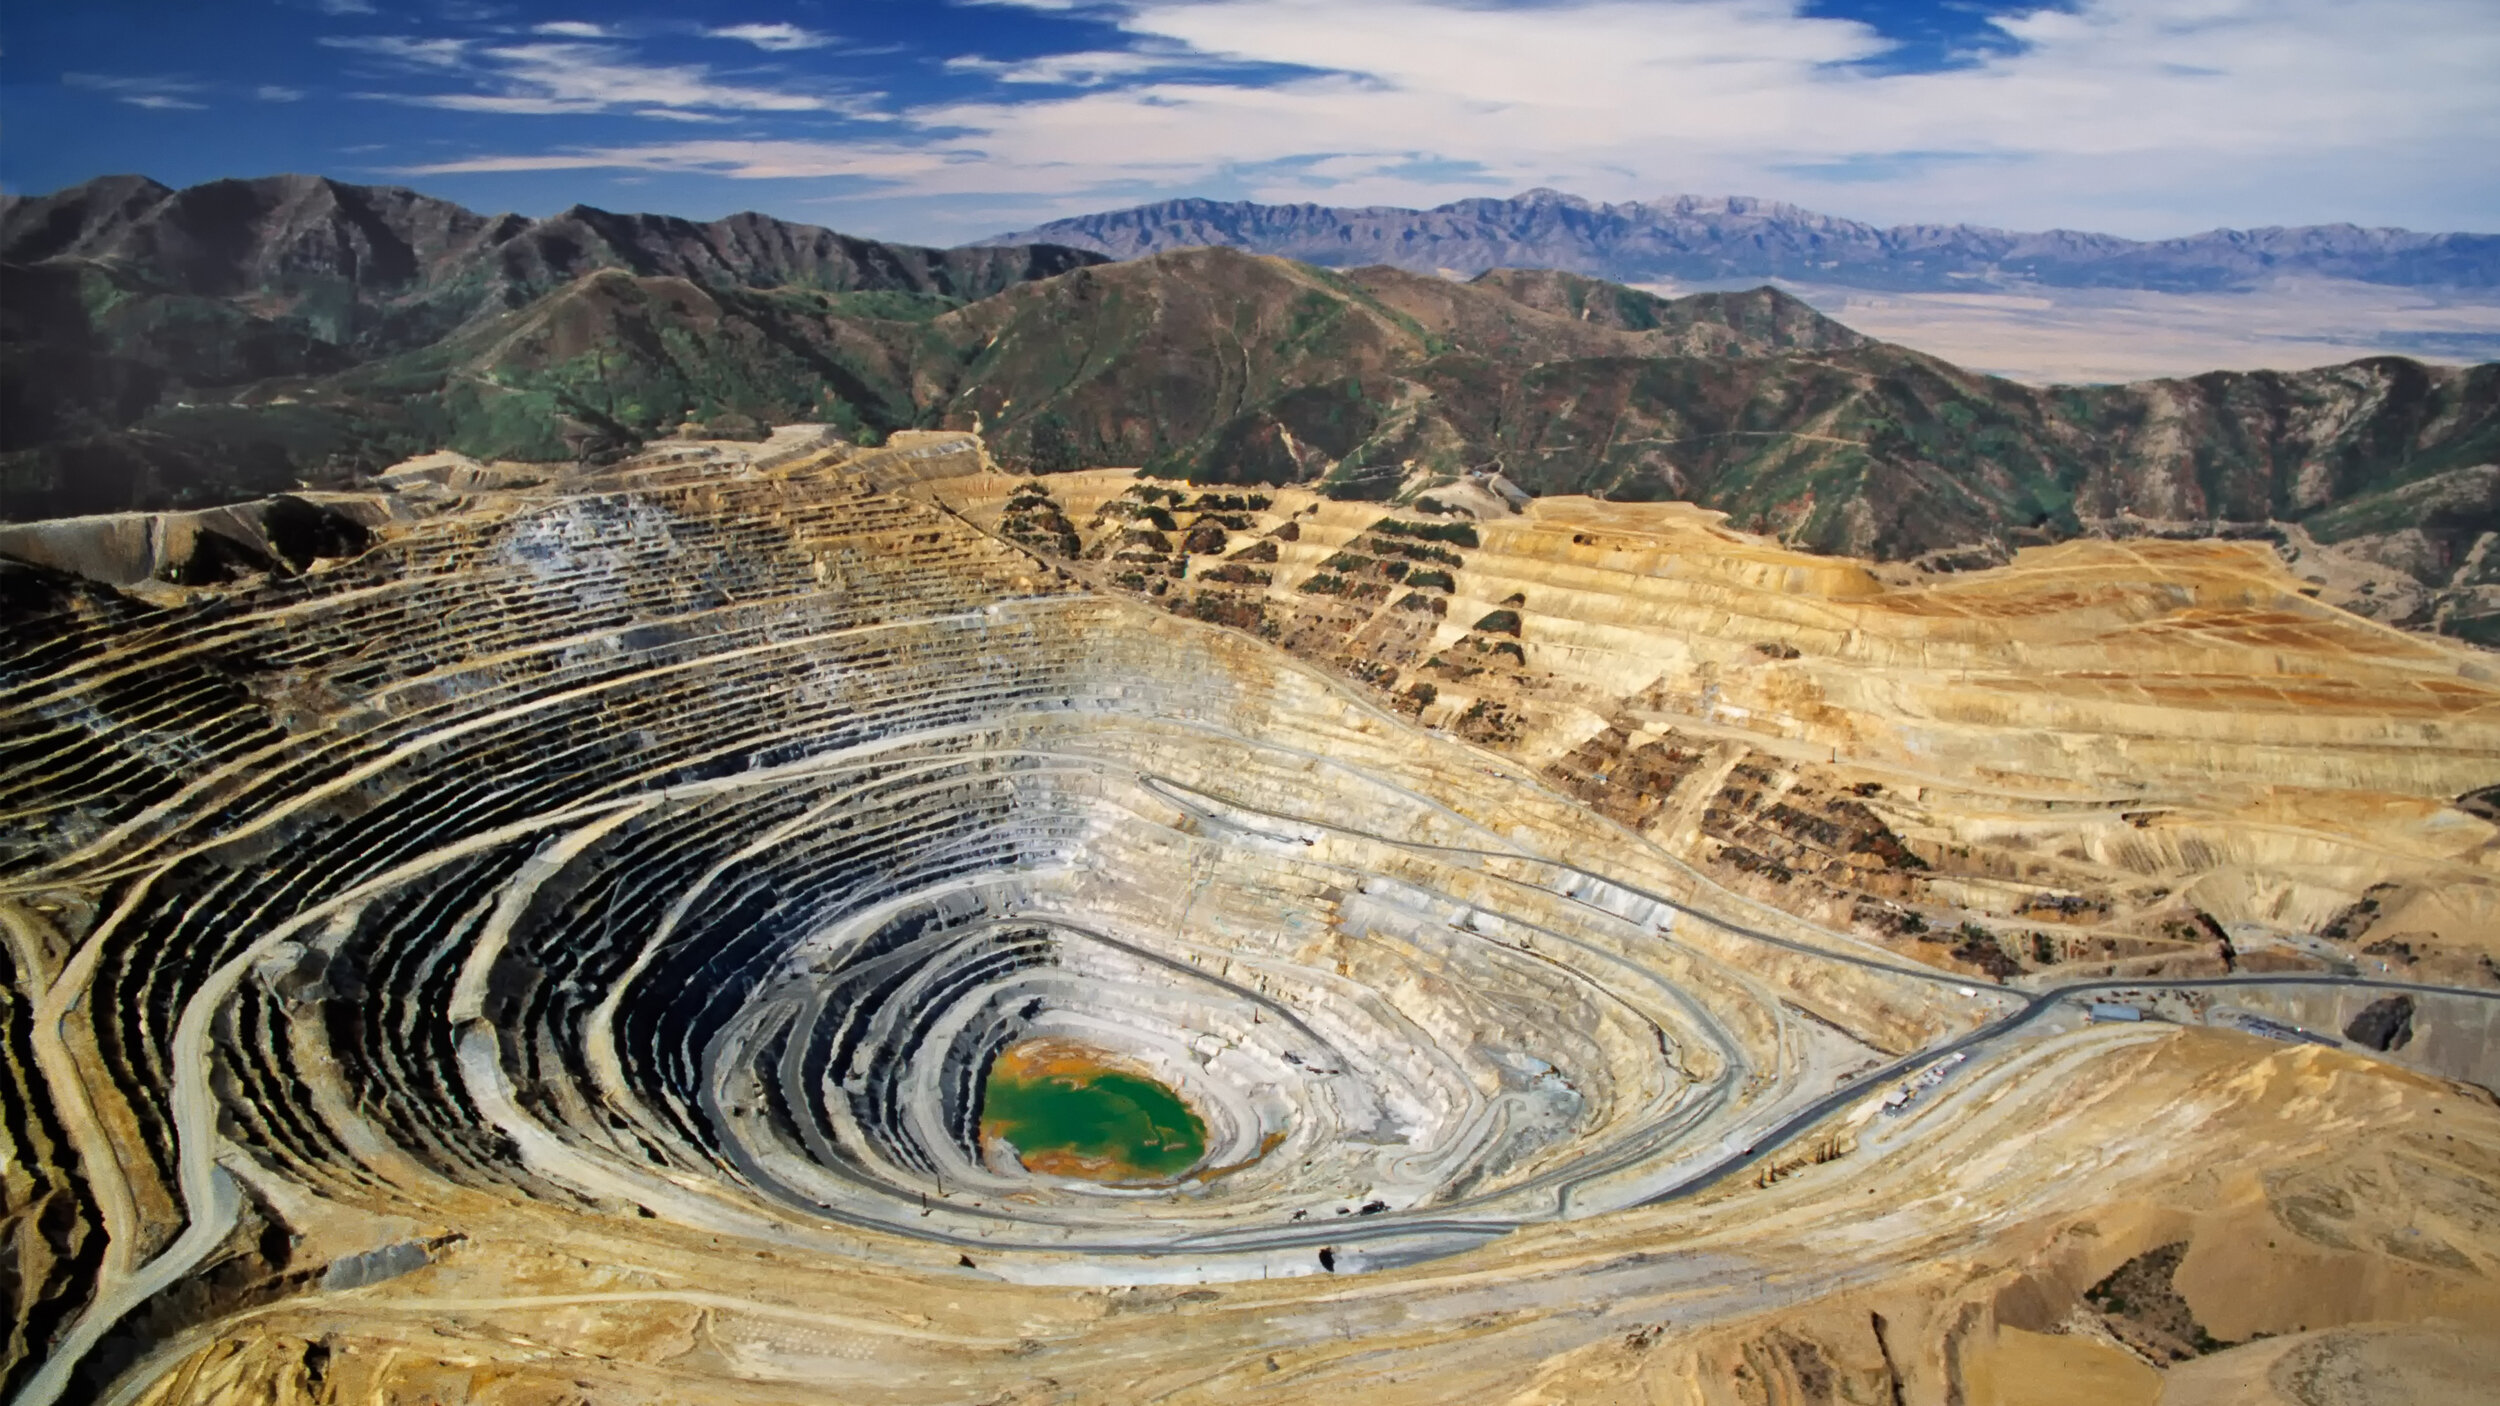 High-efficiency dewatering systems for mining operations